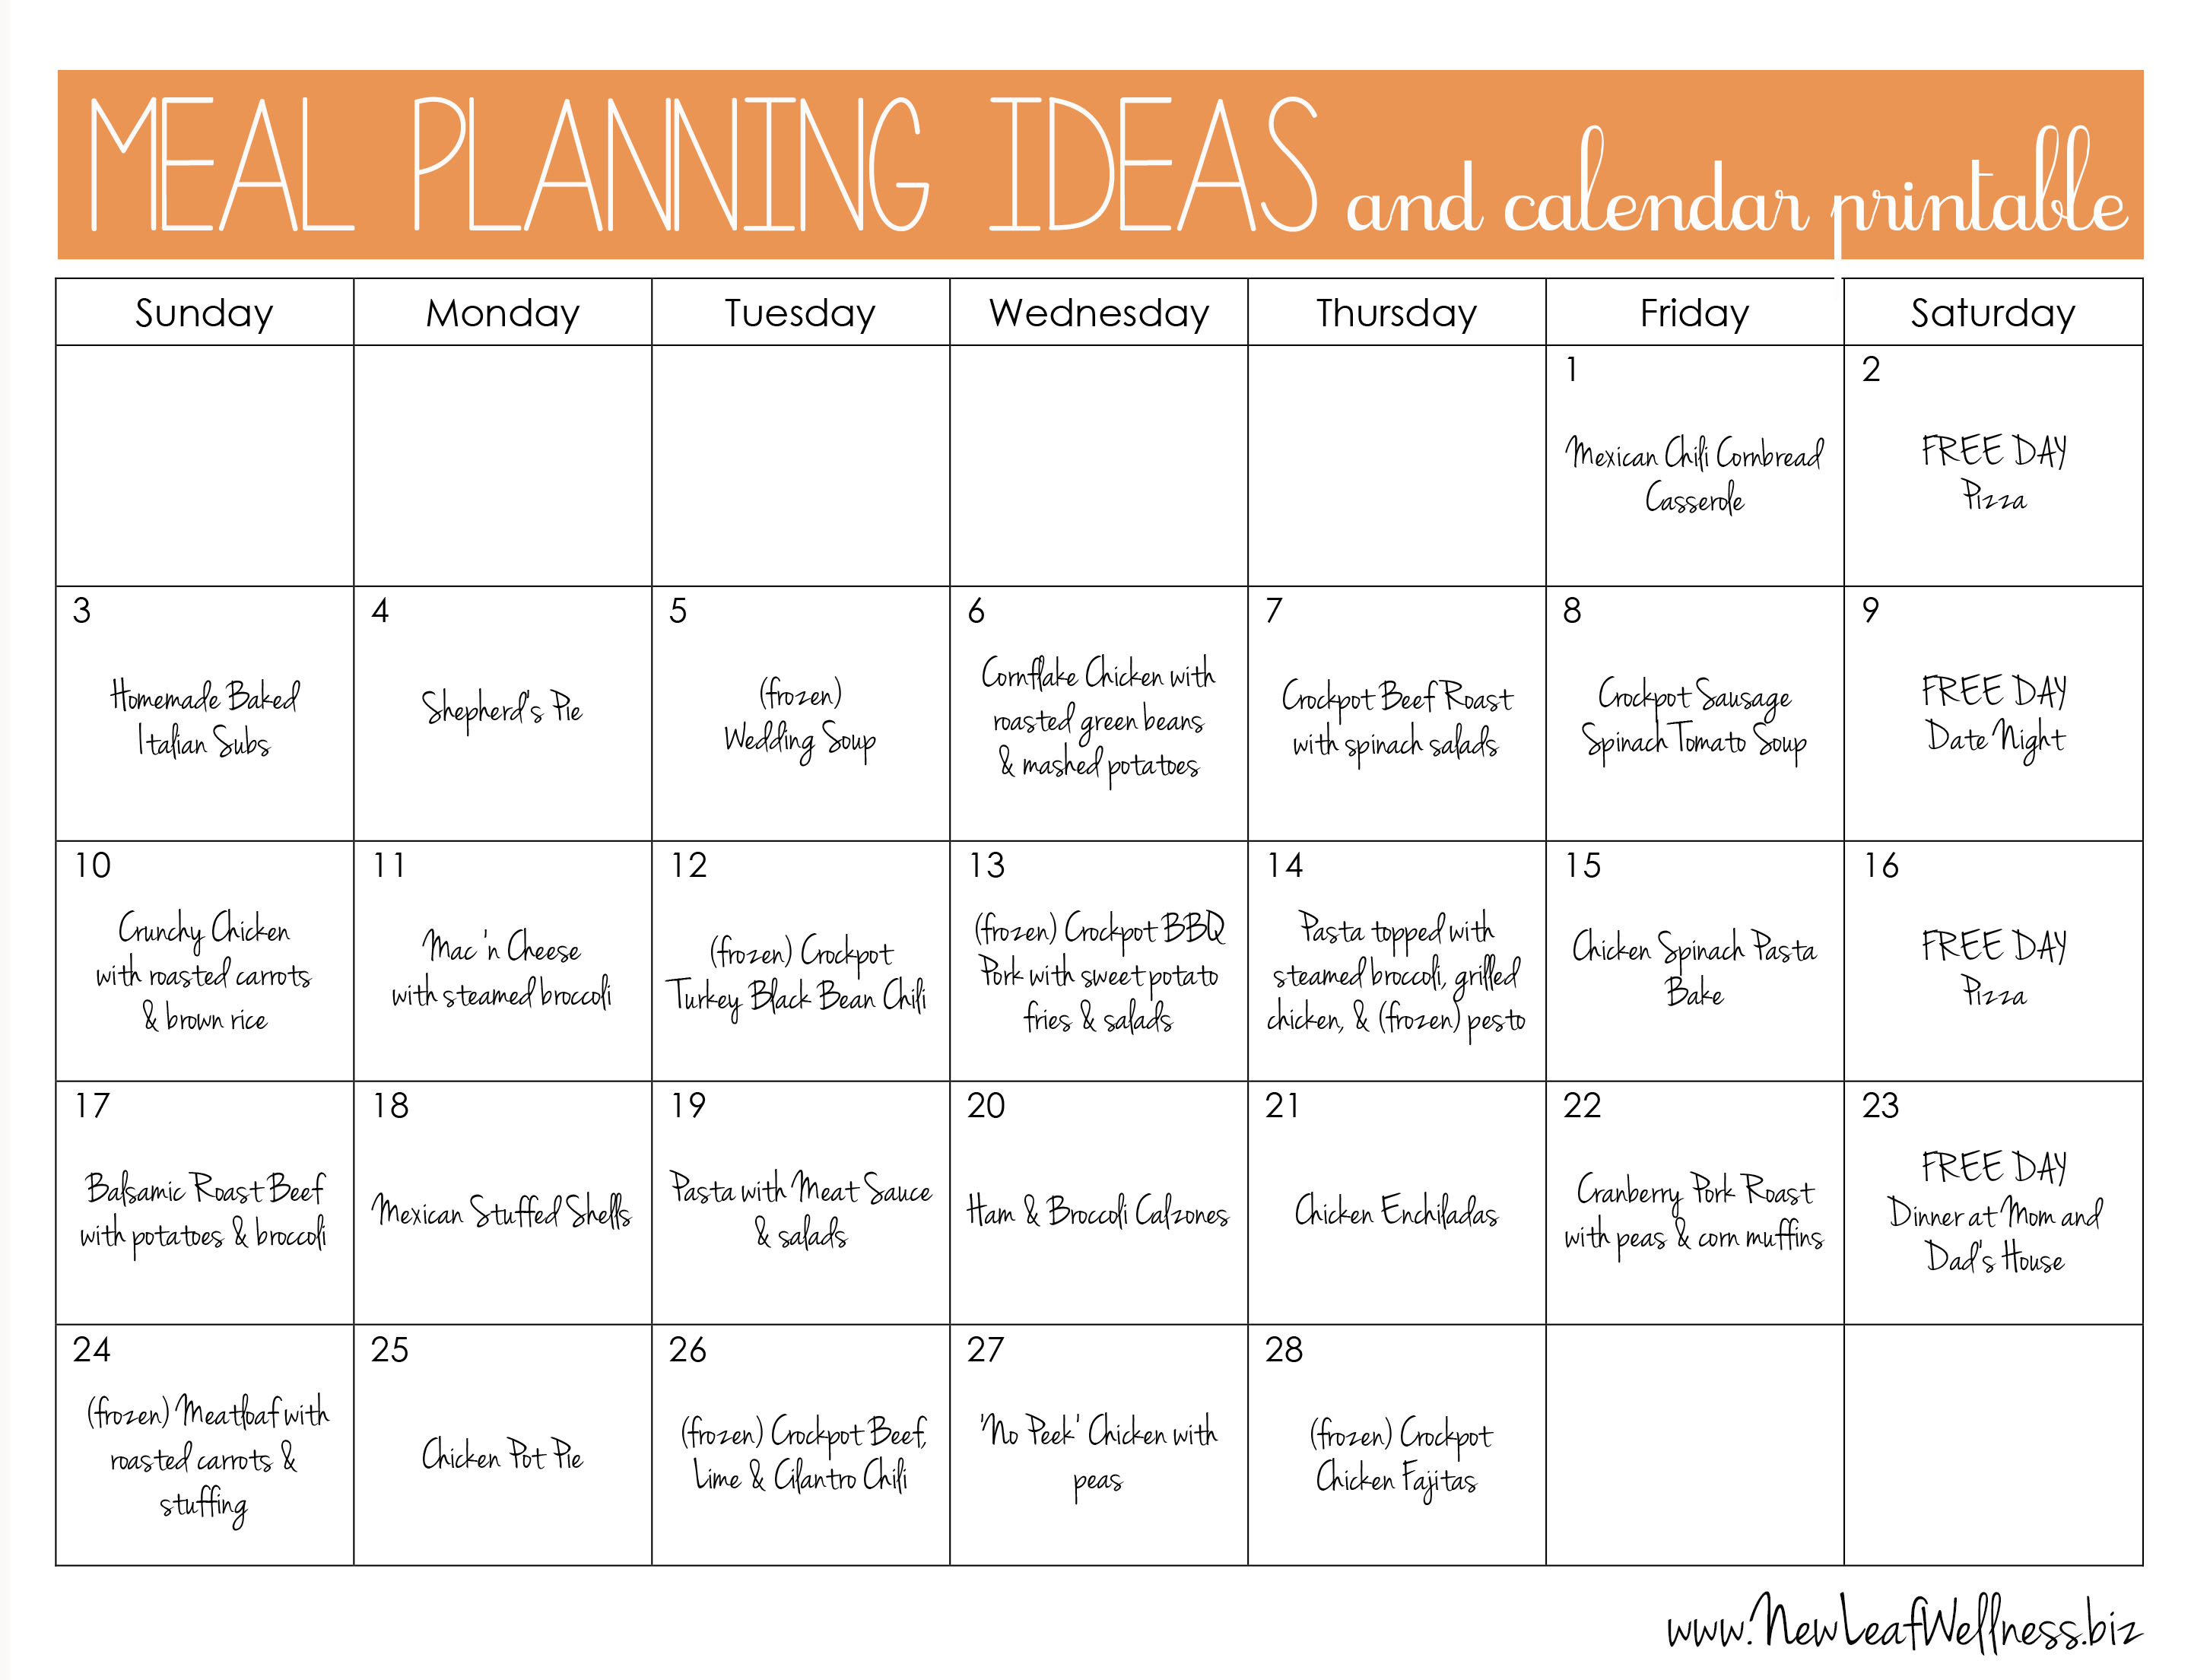 9 Images of Printable Weekly Meal Plan Ideas